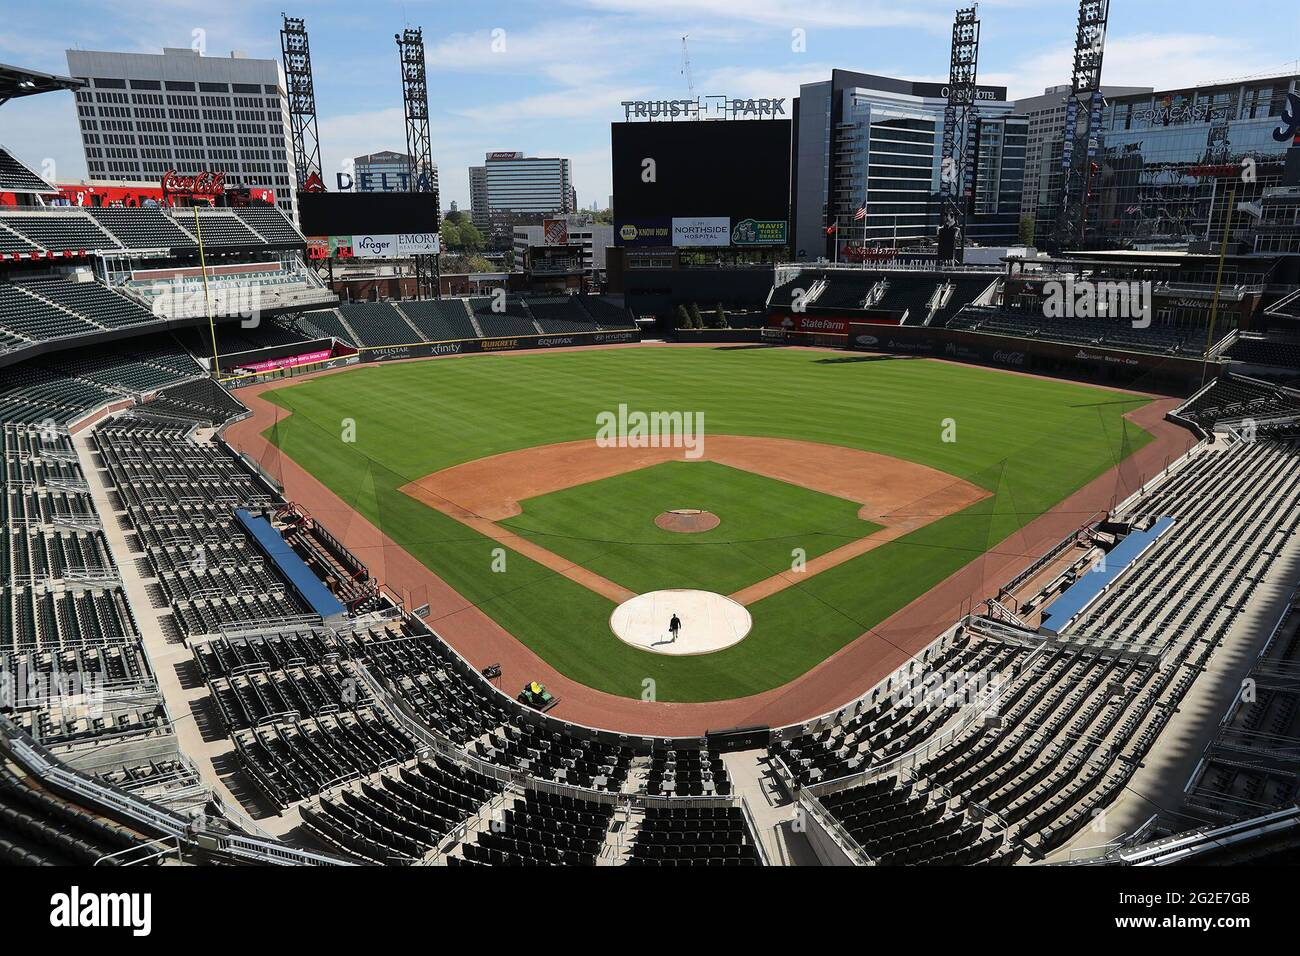 Atlanta, USA. 01st Apr, 2020. Truist Park on April 1, 2020, in Atlanta. In response to Georgia's new voting law, Major League Baseball moved its All-Star Game from the park. (Photo by Curtis Compton/Atlanta Journal-Constitution/TNS/Sipa USA) Credit: Sipa USA/Alamy Live News Stock Photo